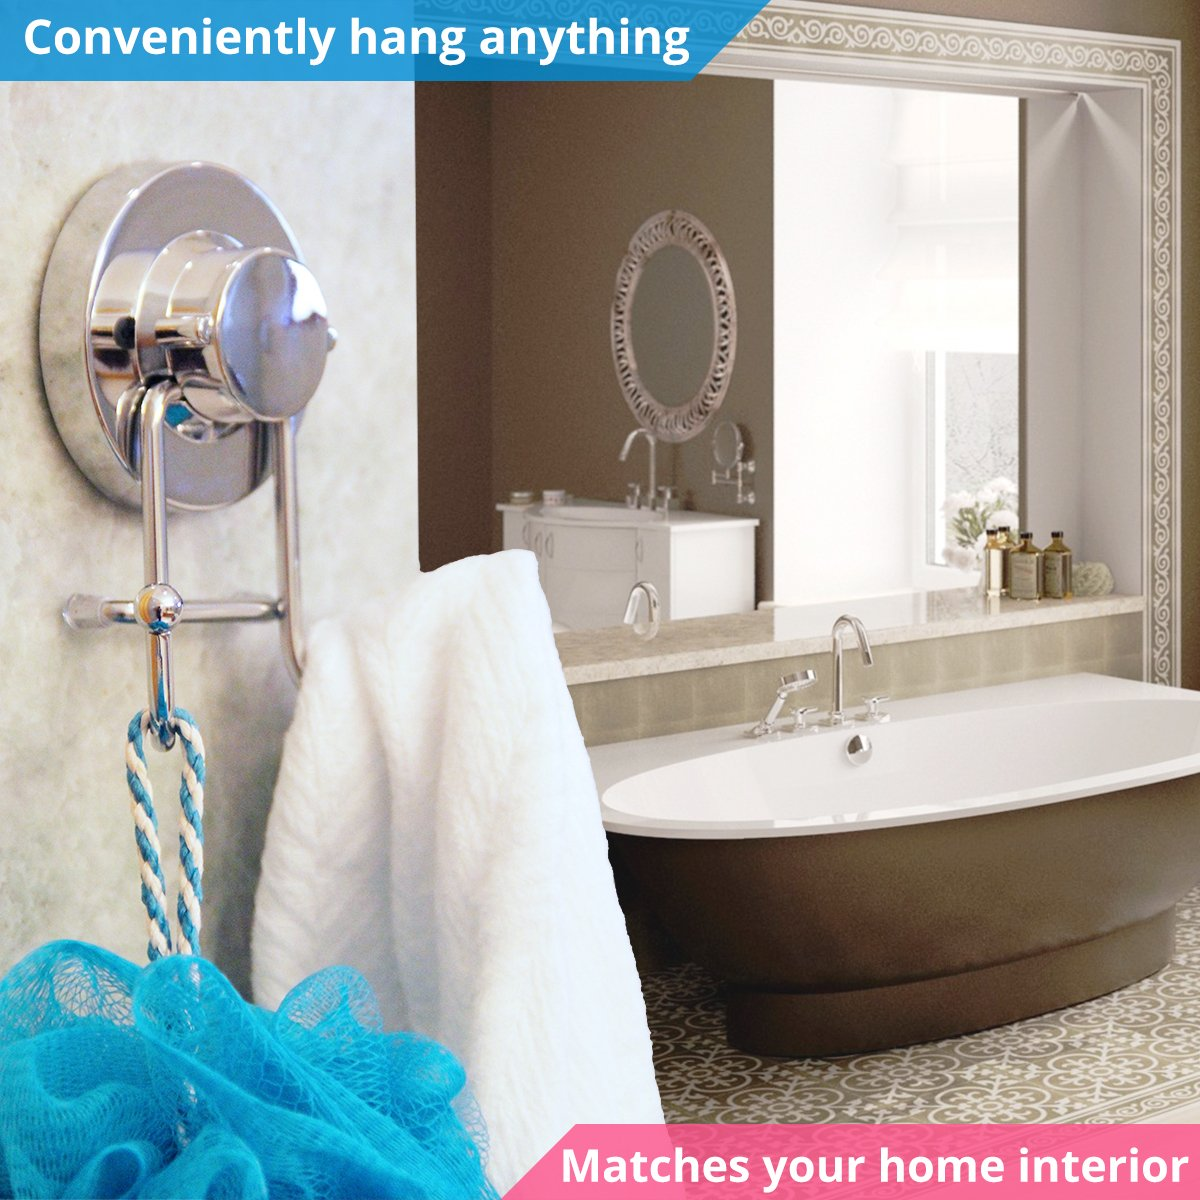 HOME SO Towel Hook with Suction Cup Holder - Bathroom Shower Kitchen Removable Hooks Hanger for Bath robe, Towels, Coat, Loofah - Stainless Steel, Chrome by HOME SO (Image #2)